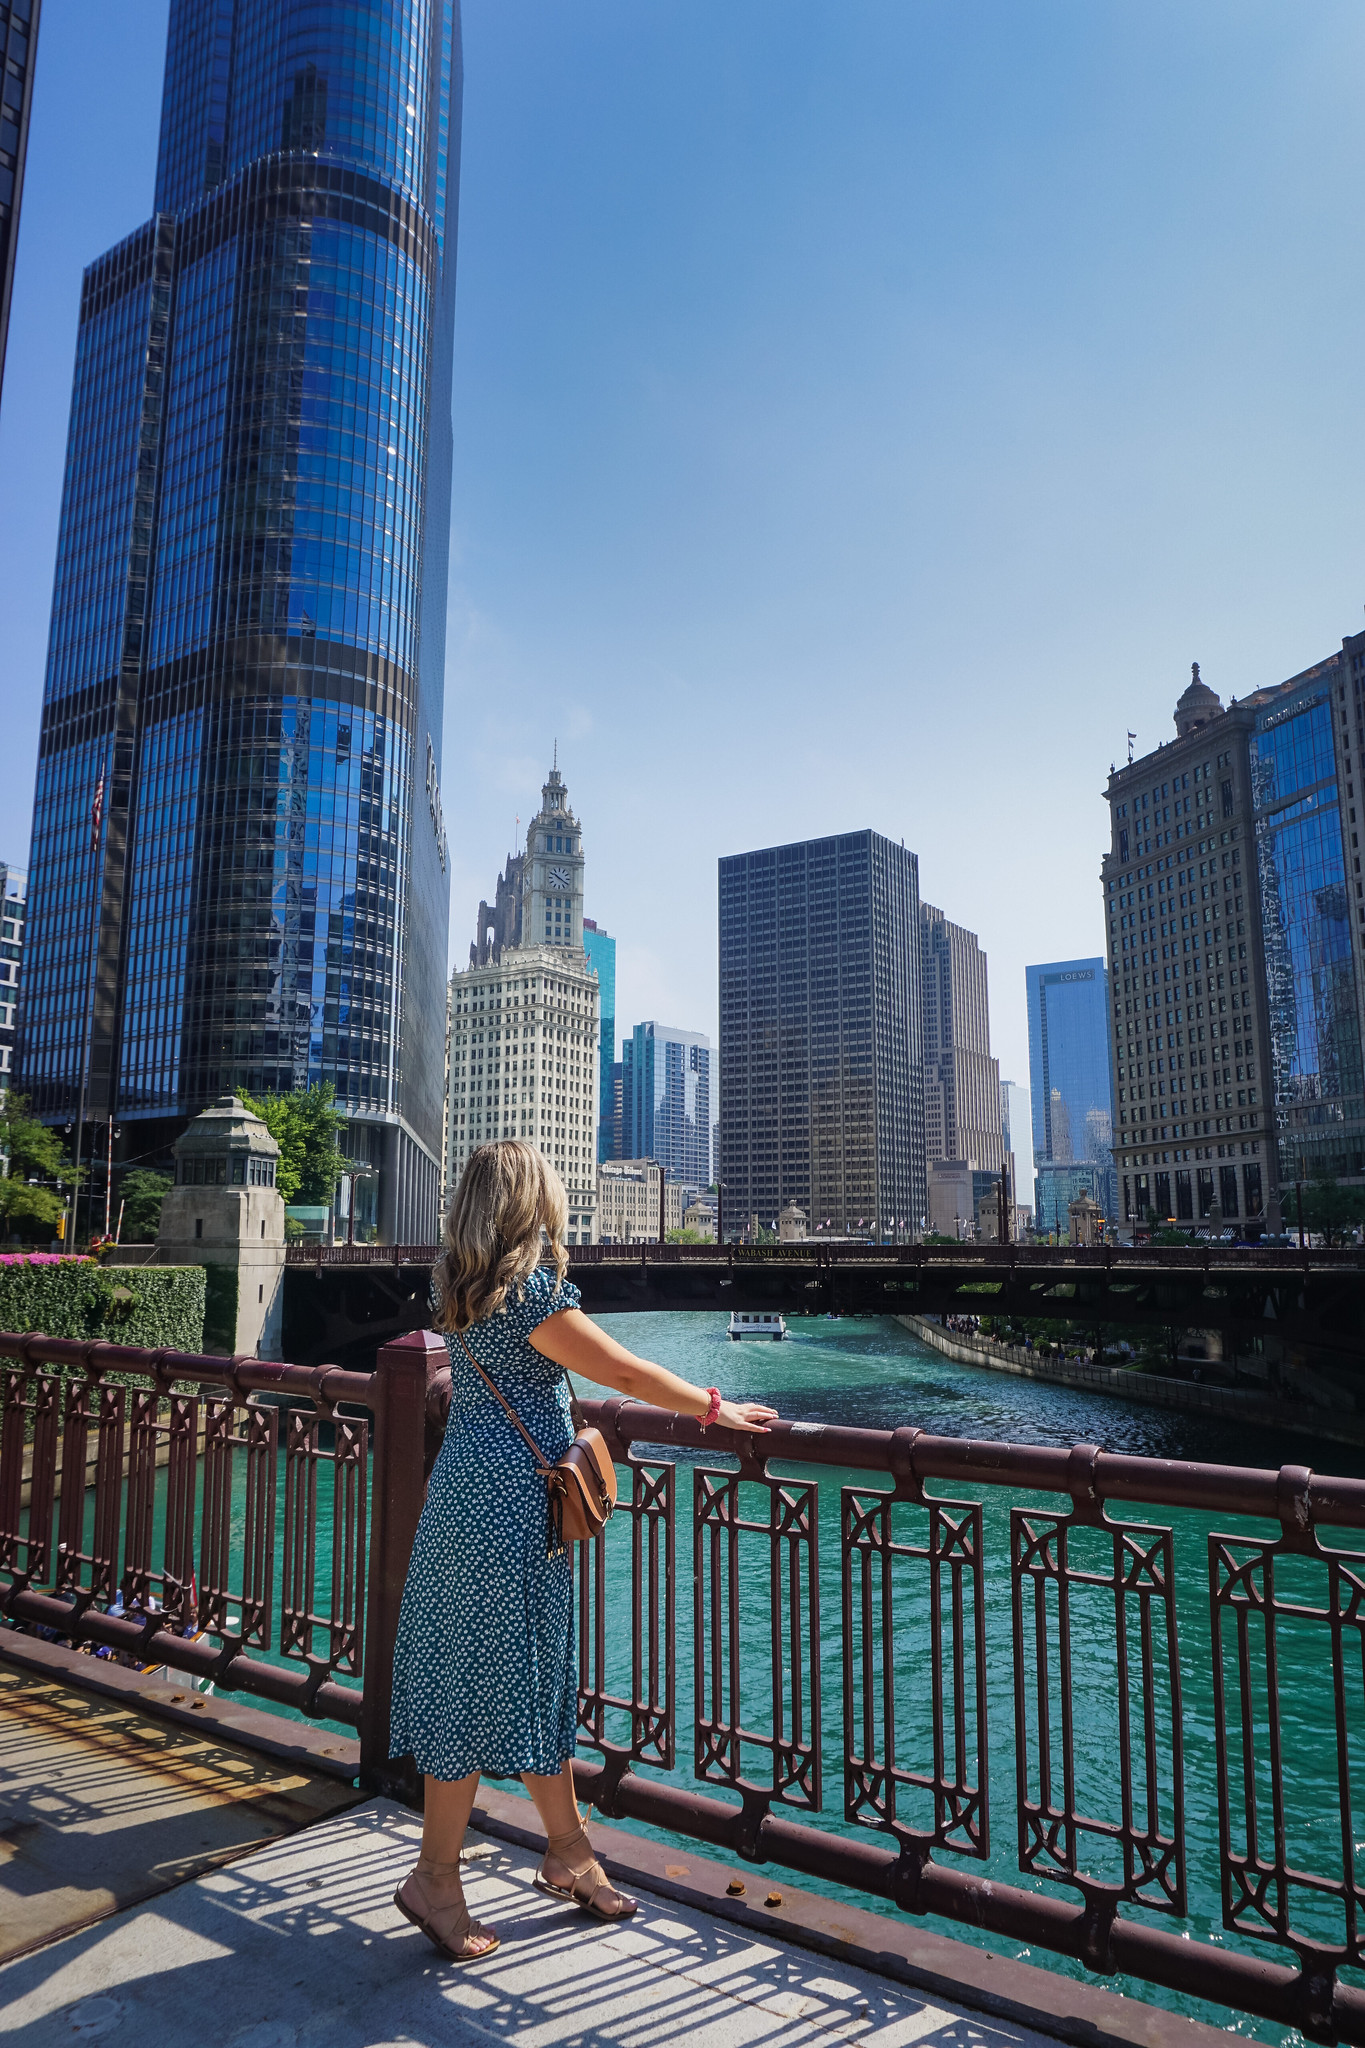 First Time In Chicago: The Perfect 3 Day Itinerary | Chicago Travel Guide | 72 Hours in Chicago | 3 Days in Chicago Itinerary | What to do in Chicago | Where to Stay in Chicago | Ultimate Chicago Bucket List | Top Things to Do in Chicago | First Timer's Guide to Chicago | Chicago River